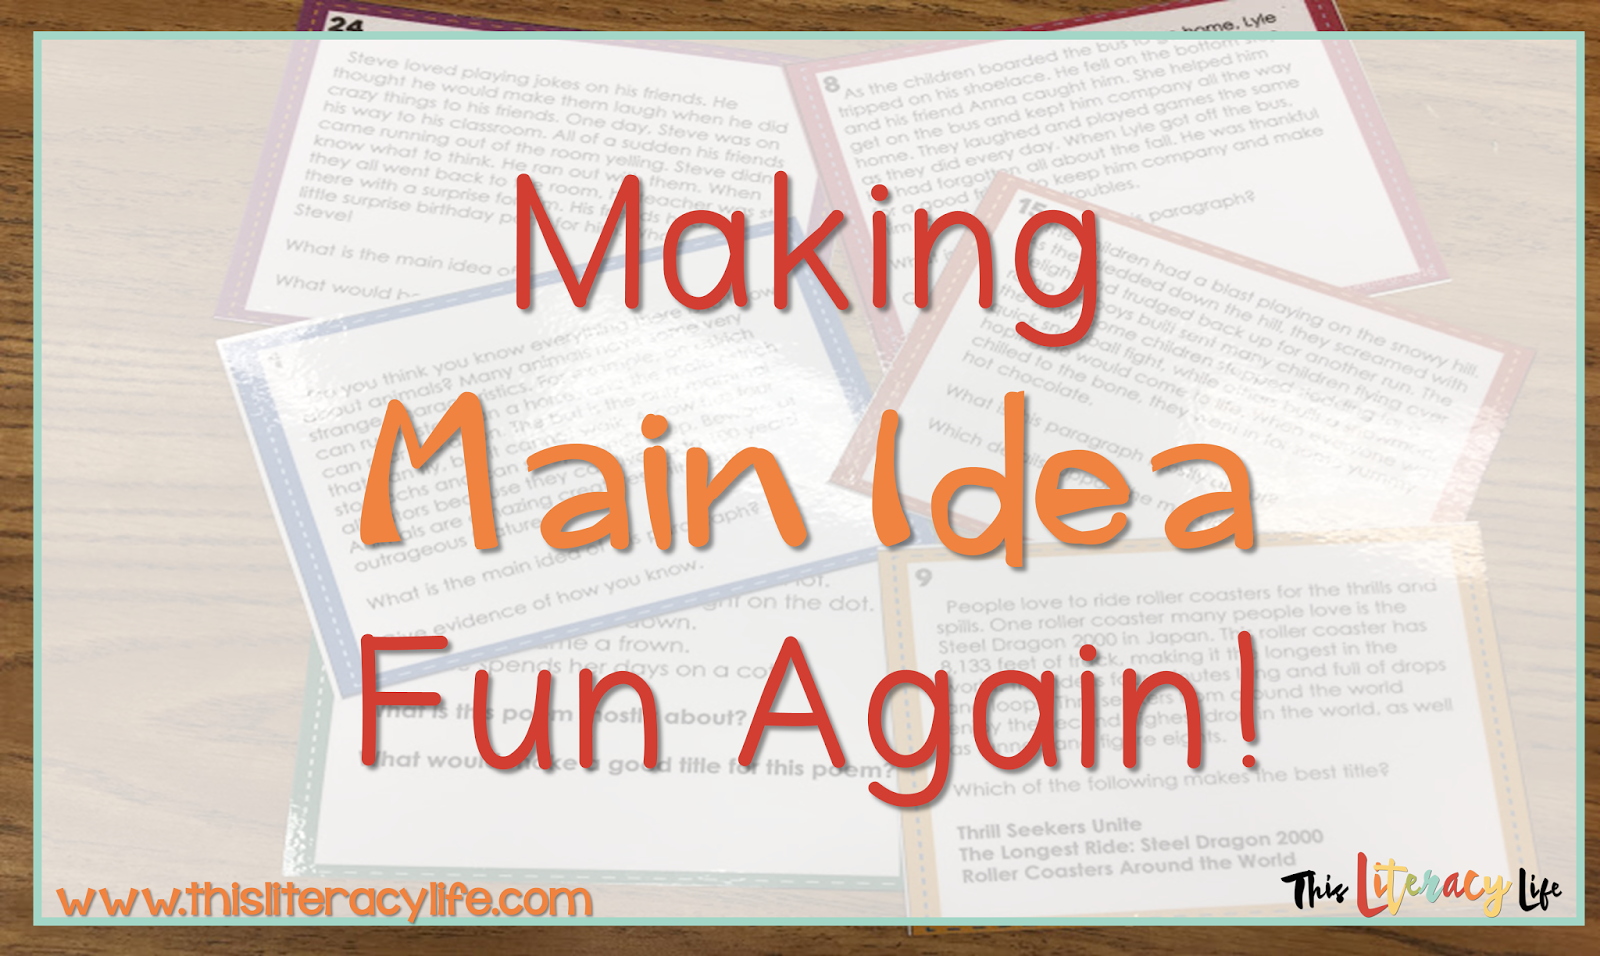 Working with main idea can get boring, but we can all make it fun for our students no matter what!